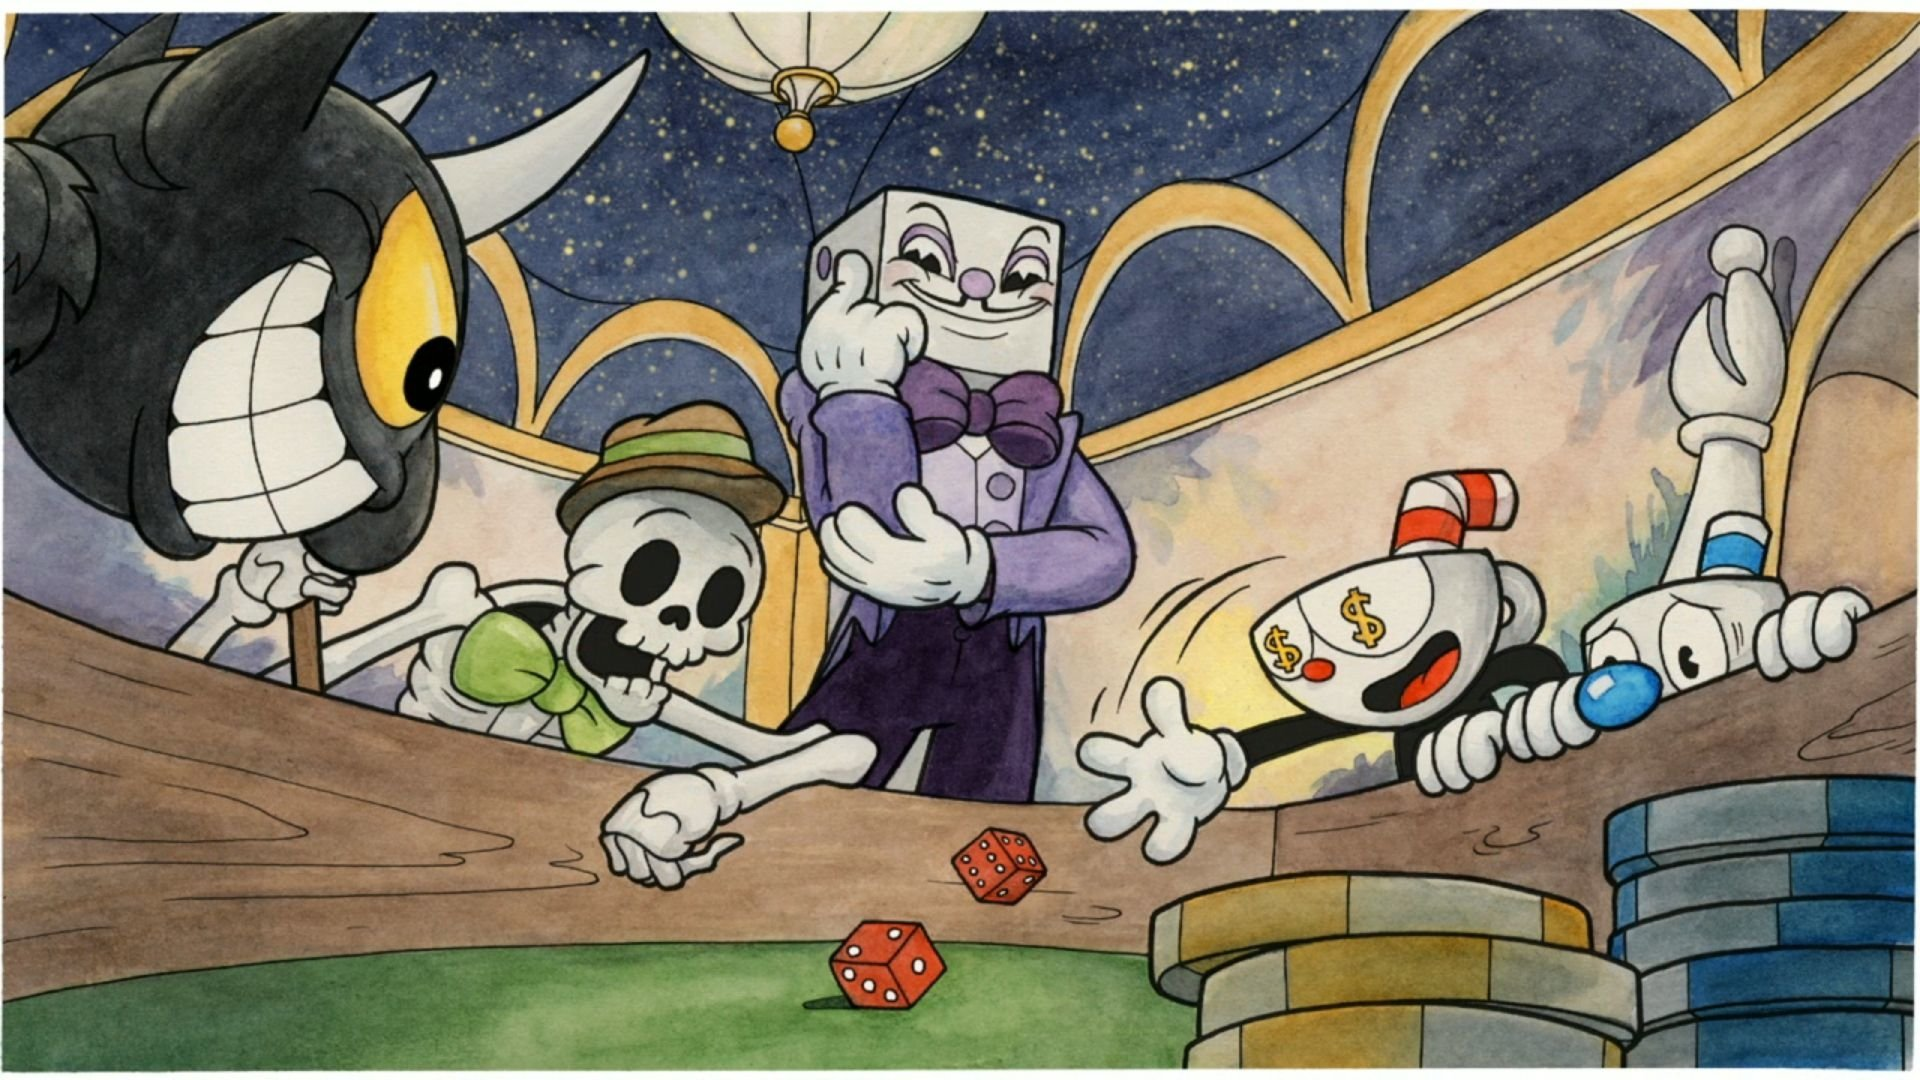 Cuphead Wallpaper Ideas – The Best background Ideas For Your Ceiling